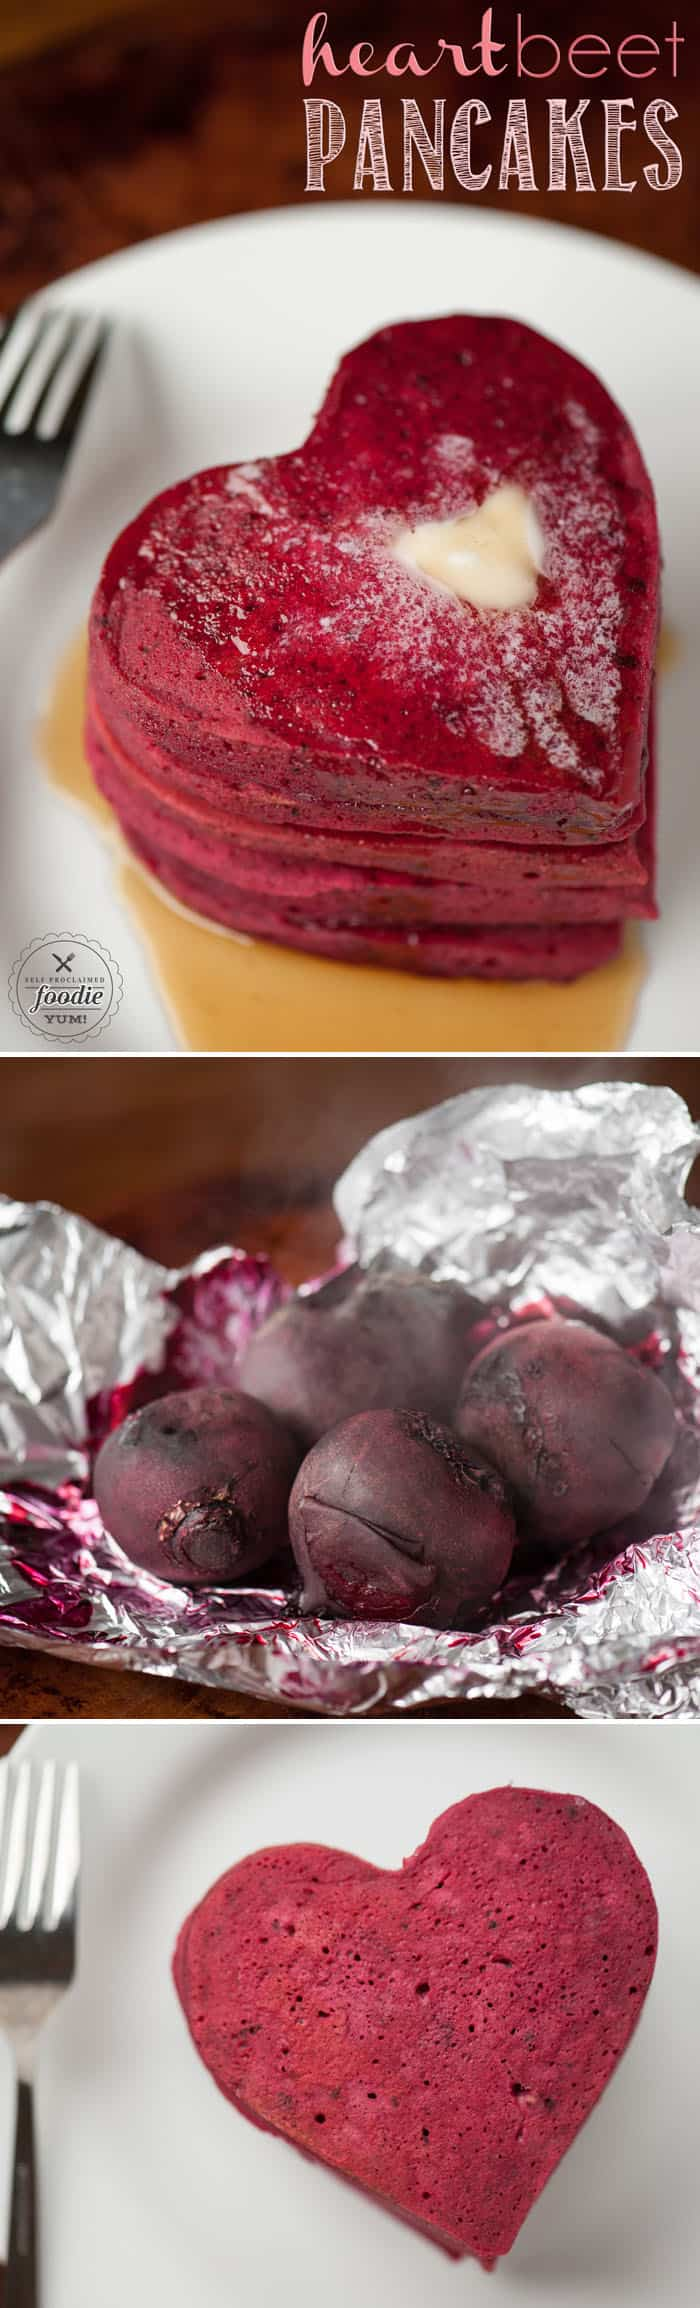 Heart Beet Pancakes are the made with sweet roasted beets and make the most delicious red velvet pancakes that are perfect for Valentine's Day.